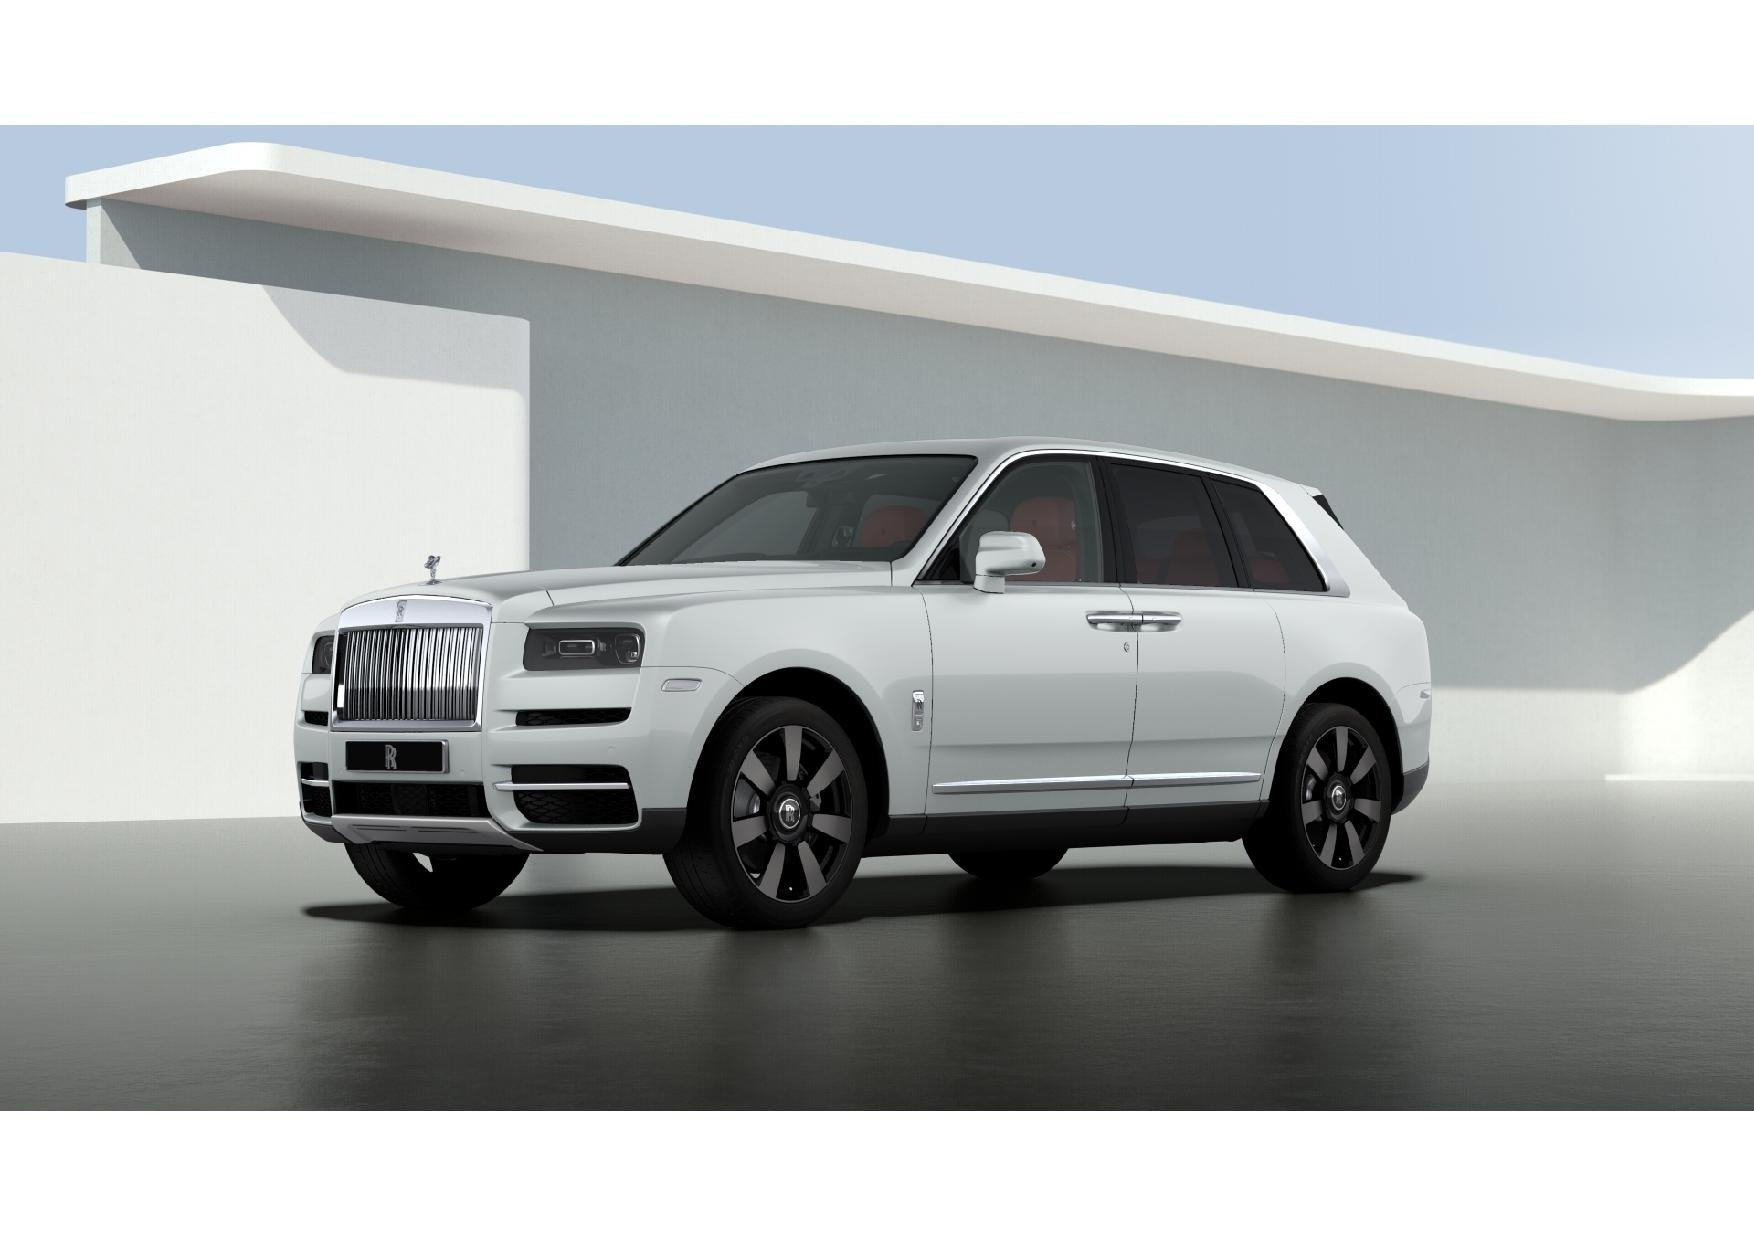 New 2021 Rolls-Royce Cullinan for sale $391,375 at Bentley Greenwich in Greenwich CT 06830 1